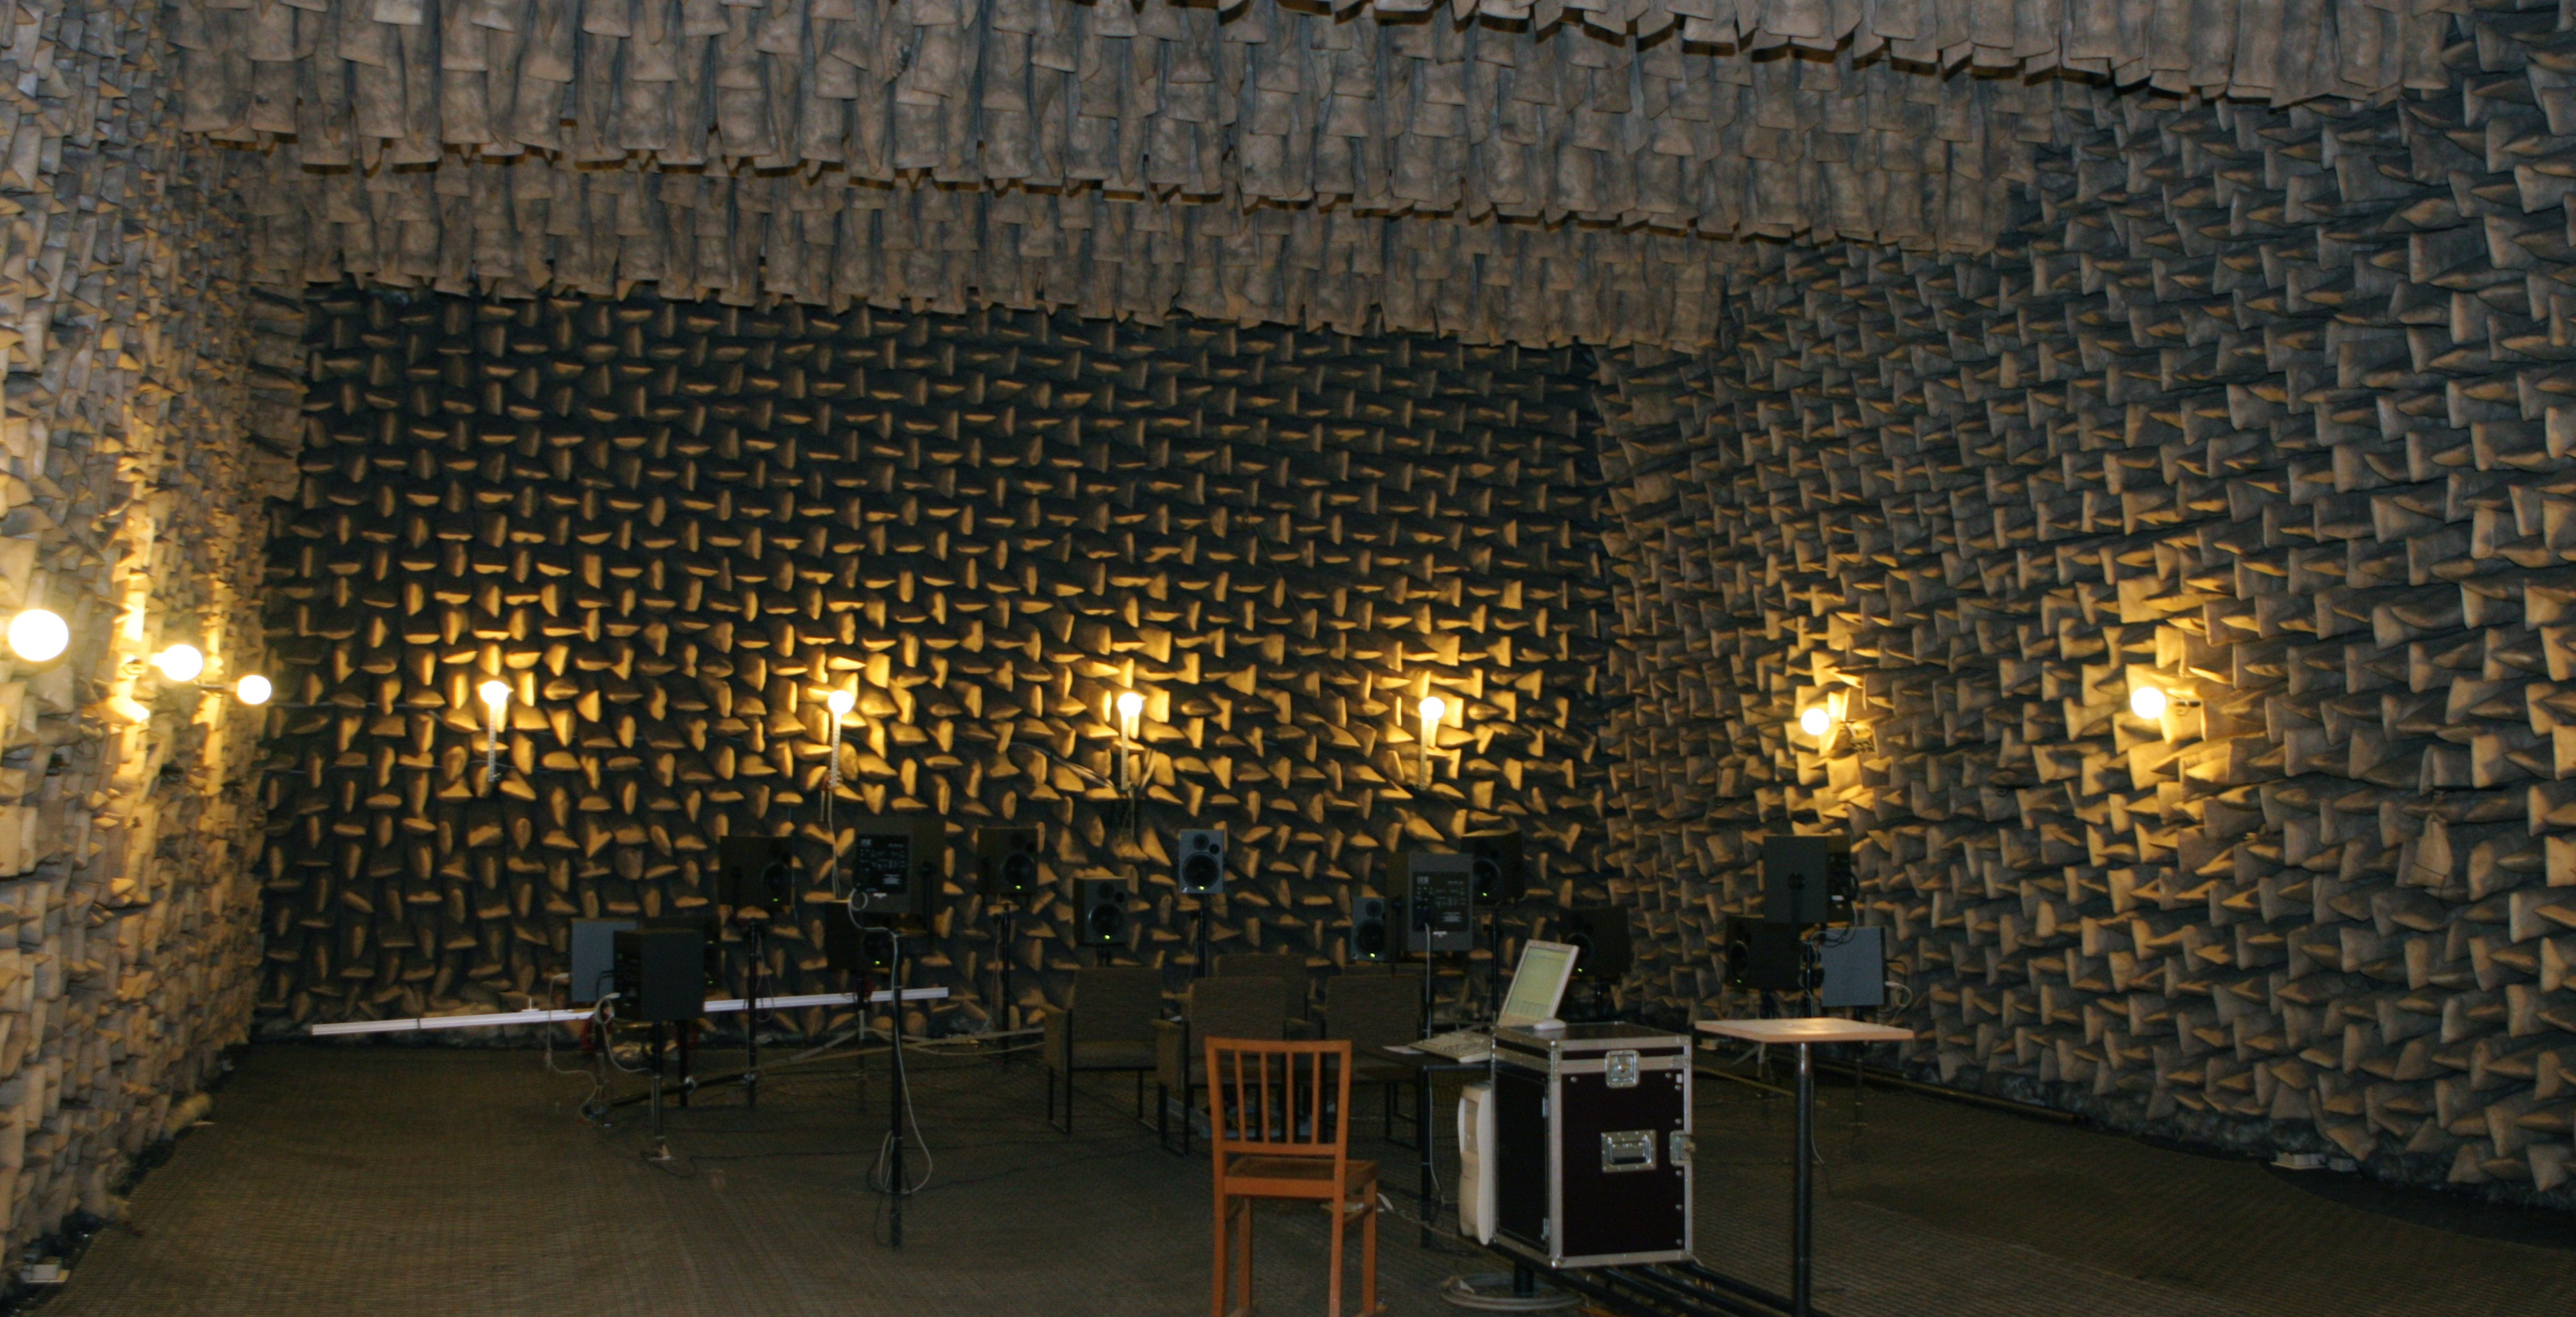 An anechoic room at the Dresden University of Technology